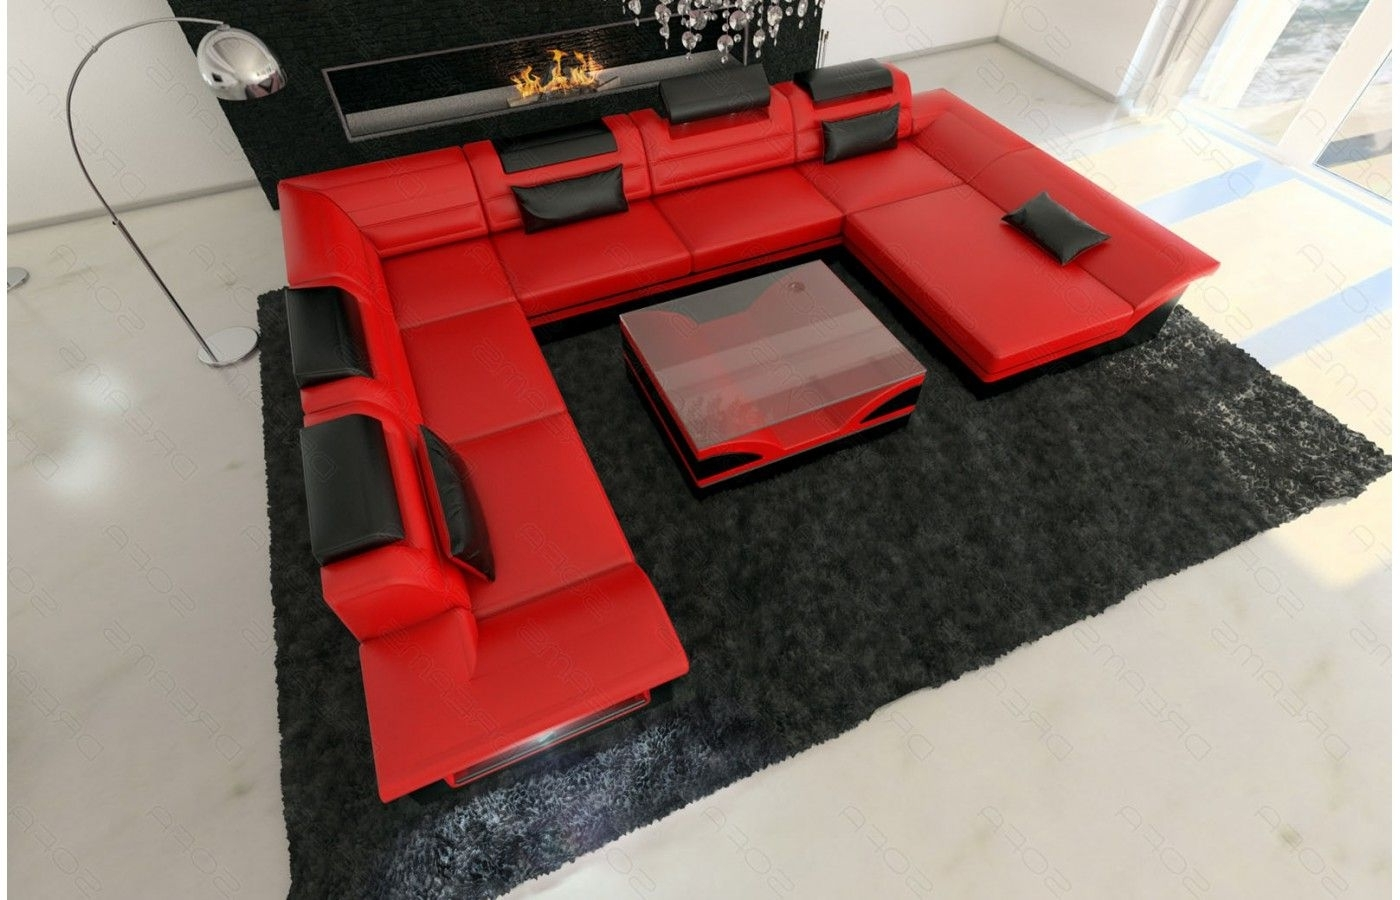 Famous Red And Black Sofas With Regard To Wohnlandschaft Enzo Xxl In Rot Schwarz – Exklusive Designer Möbel (View 6 of 15)